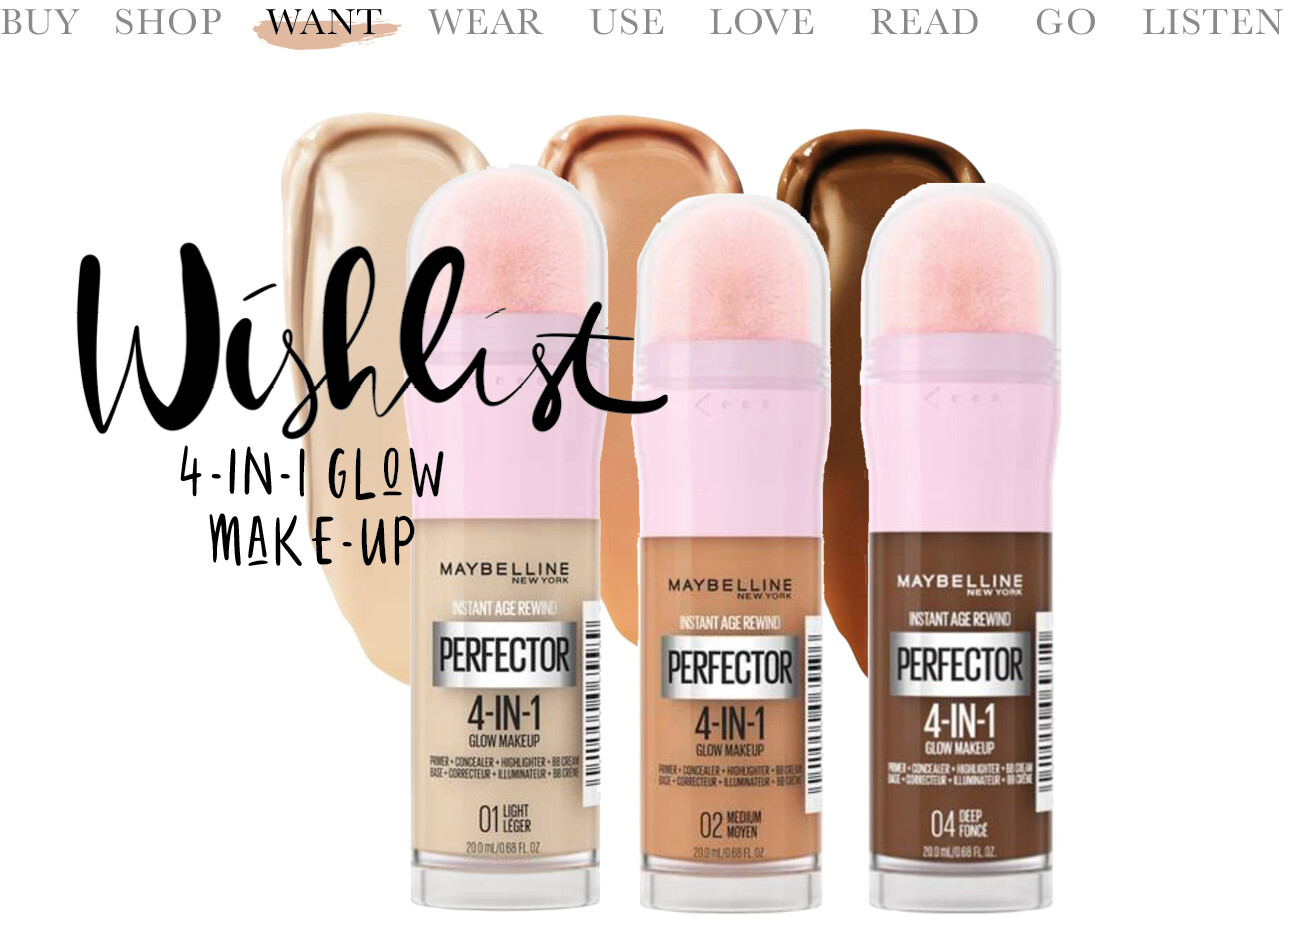 Instant Perfector 4-in-1 Glow Makeup Foundation